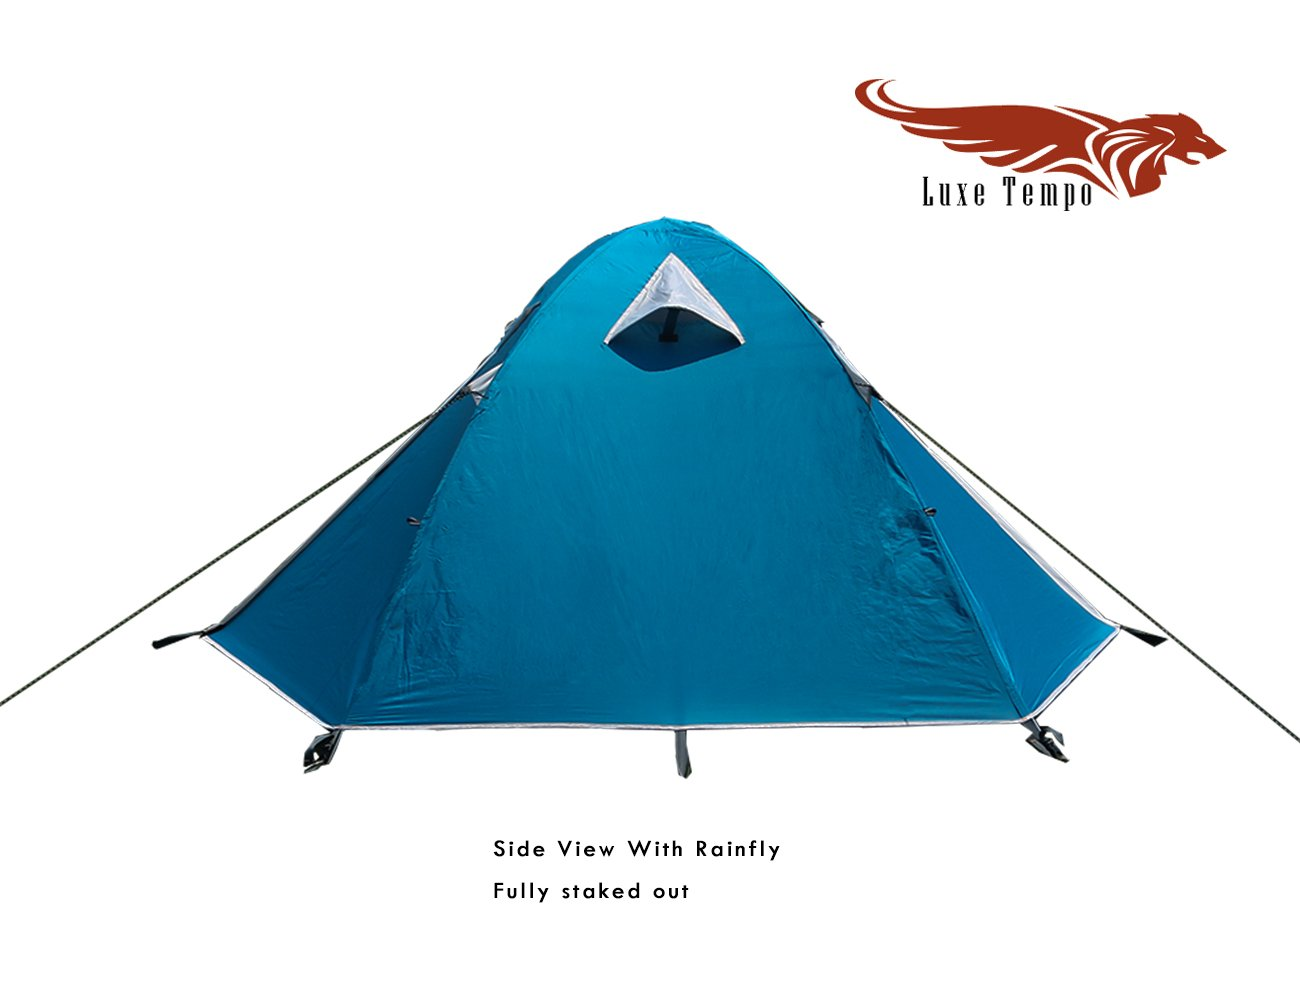 Amazon.com  Luxe Tempo Backpacking 2 Person Tents for C&ing with Rainfly 3-4 season 2 Doors 2 Vestibules  Sports u0026 Outdoors  sc 1 st  Amazon.com & Amazon.com : Luxe Tempo Backpacking 2 Person Tents for Camping ...